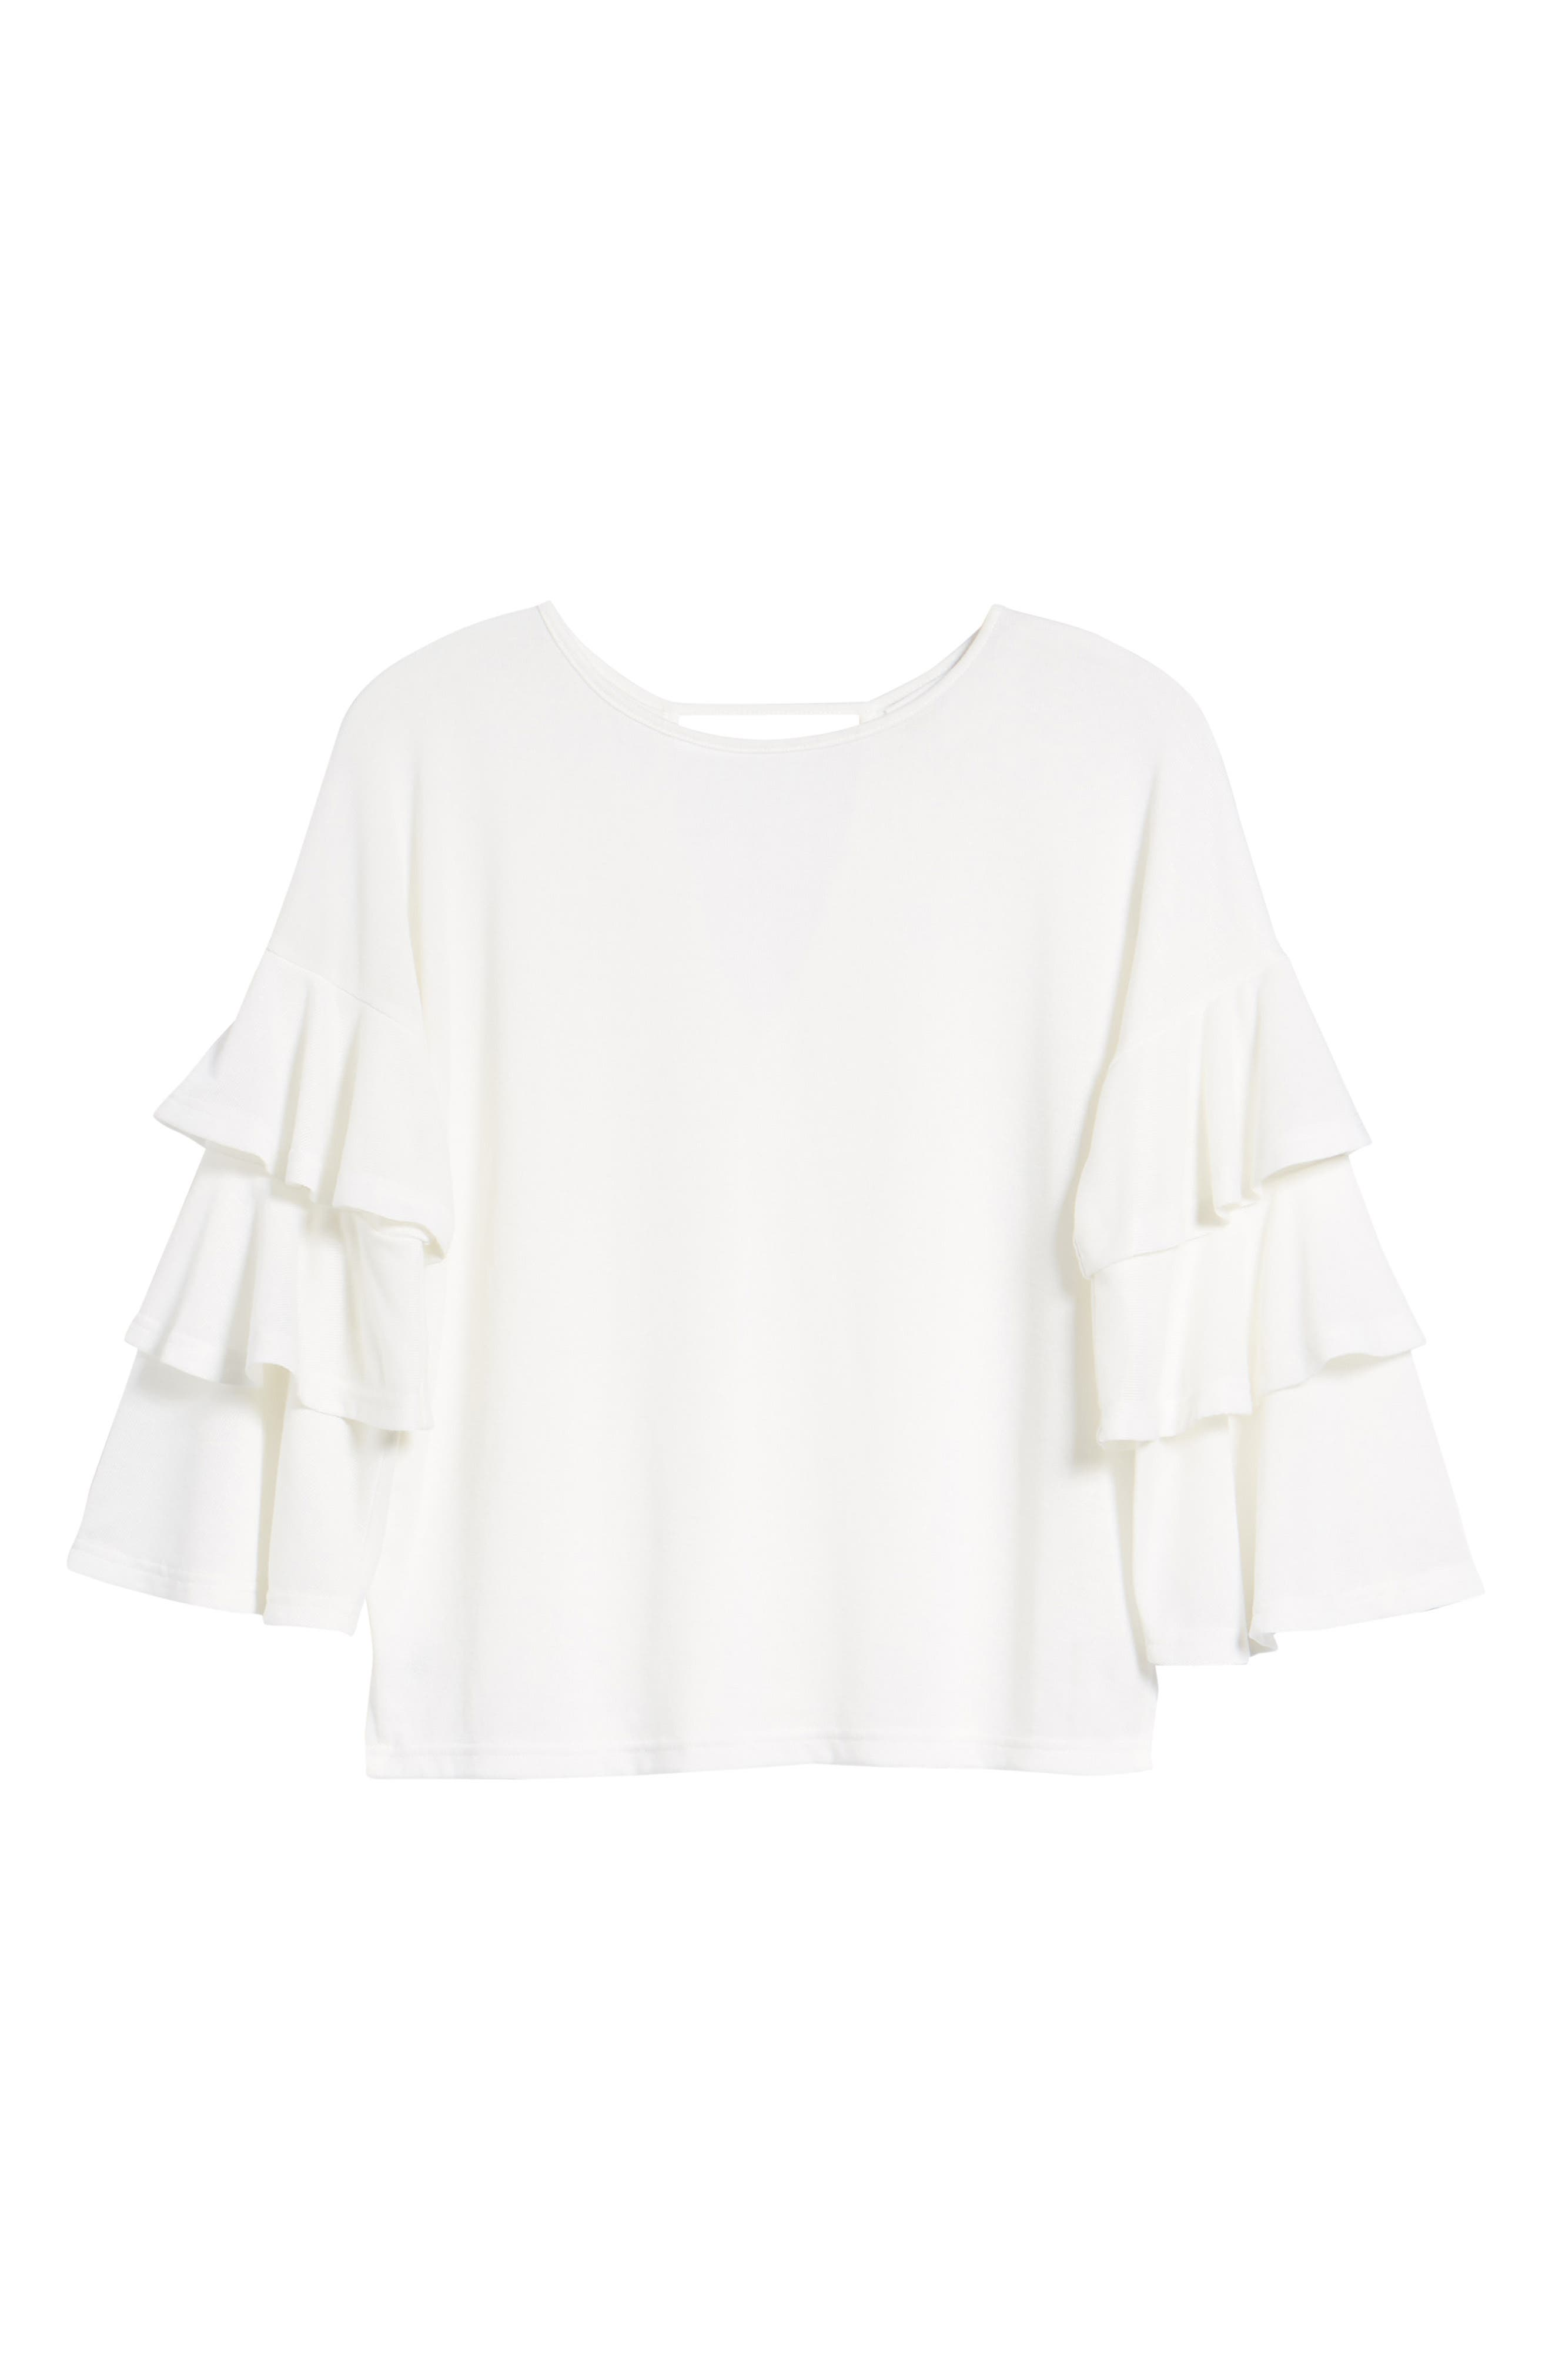 Bishop + Young Katie Tiered Ruffle Sleeve Top,                             Alternate thumbnail 7, color,                             WHITE